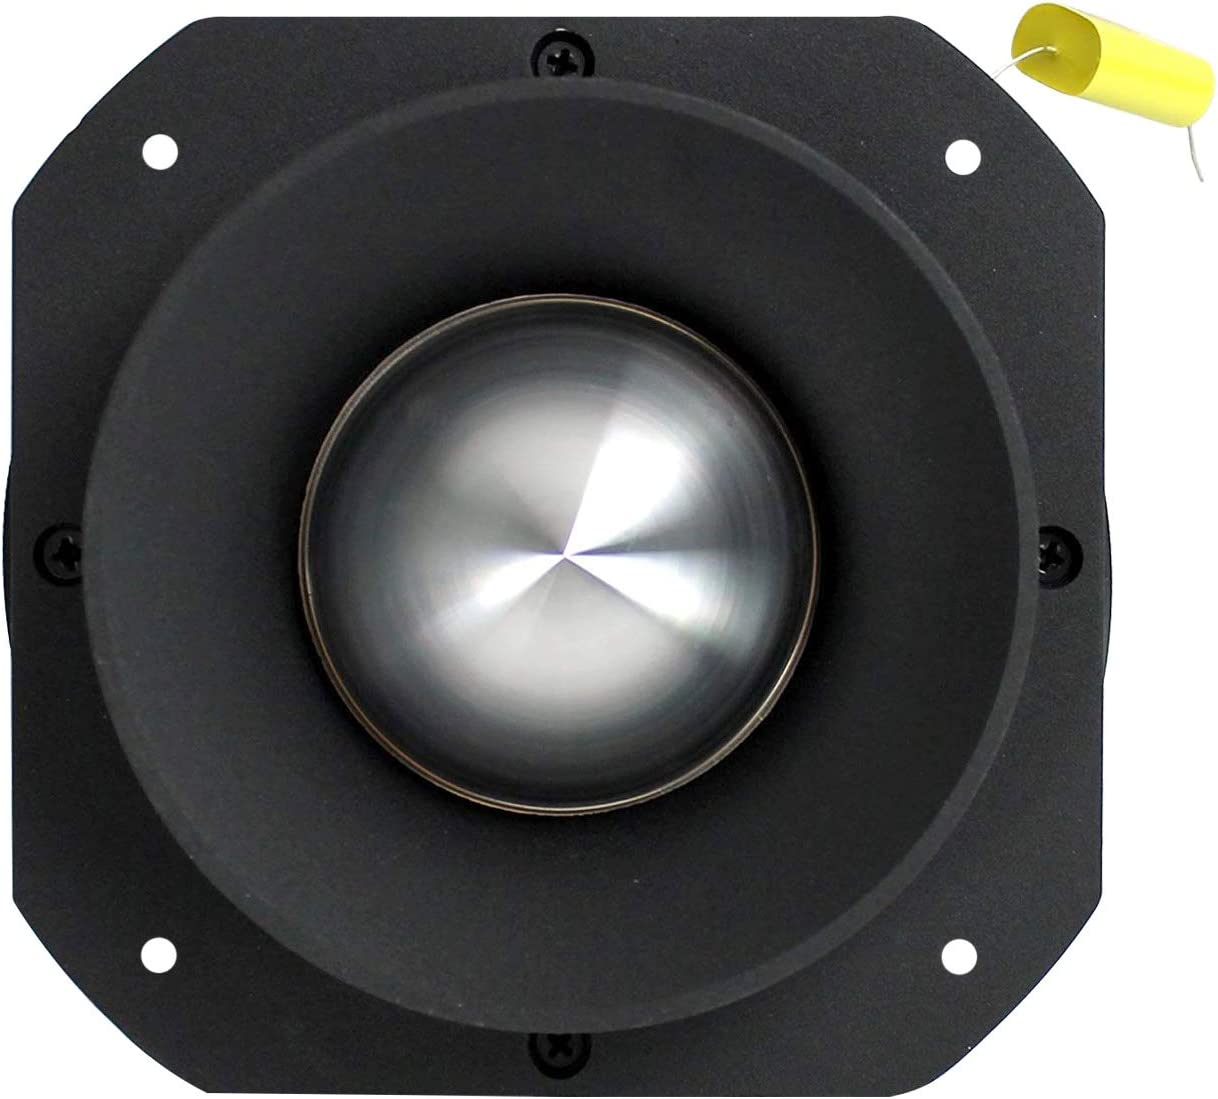 "VOYZ 600 Watt Super Tweeter 2KHz VZ-47A 25KHz 2/"" Piezo Horn Heavy Duty Bullet Tweeter Titanium Diaphragm 4-8 ohms with Crossover Capacitor"